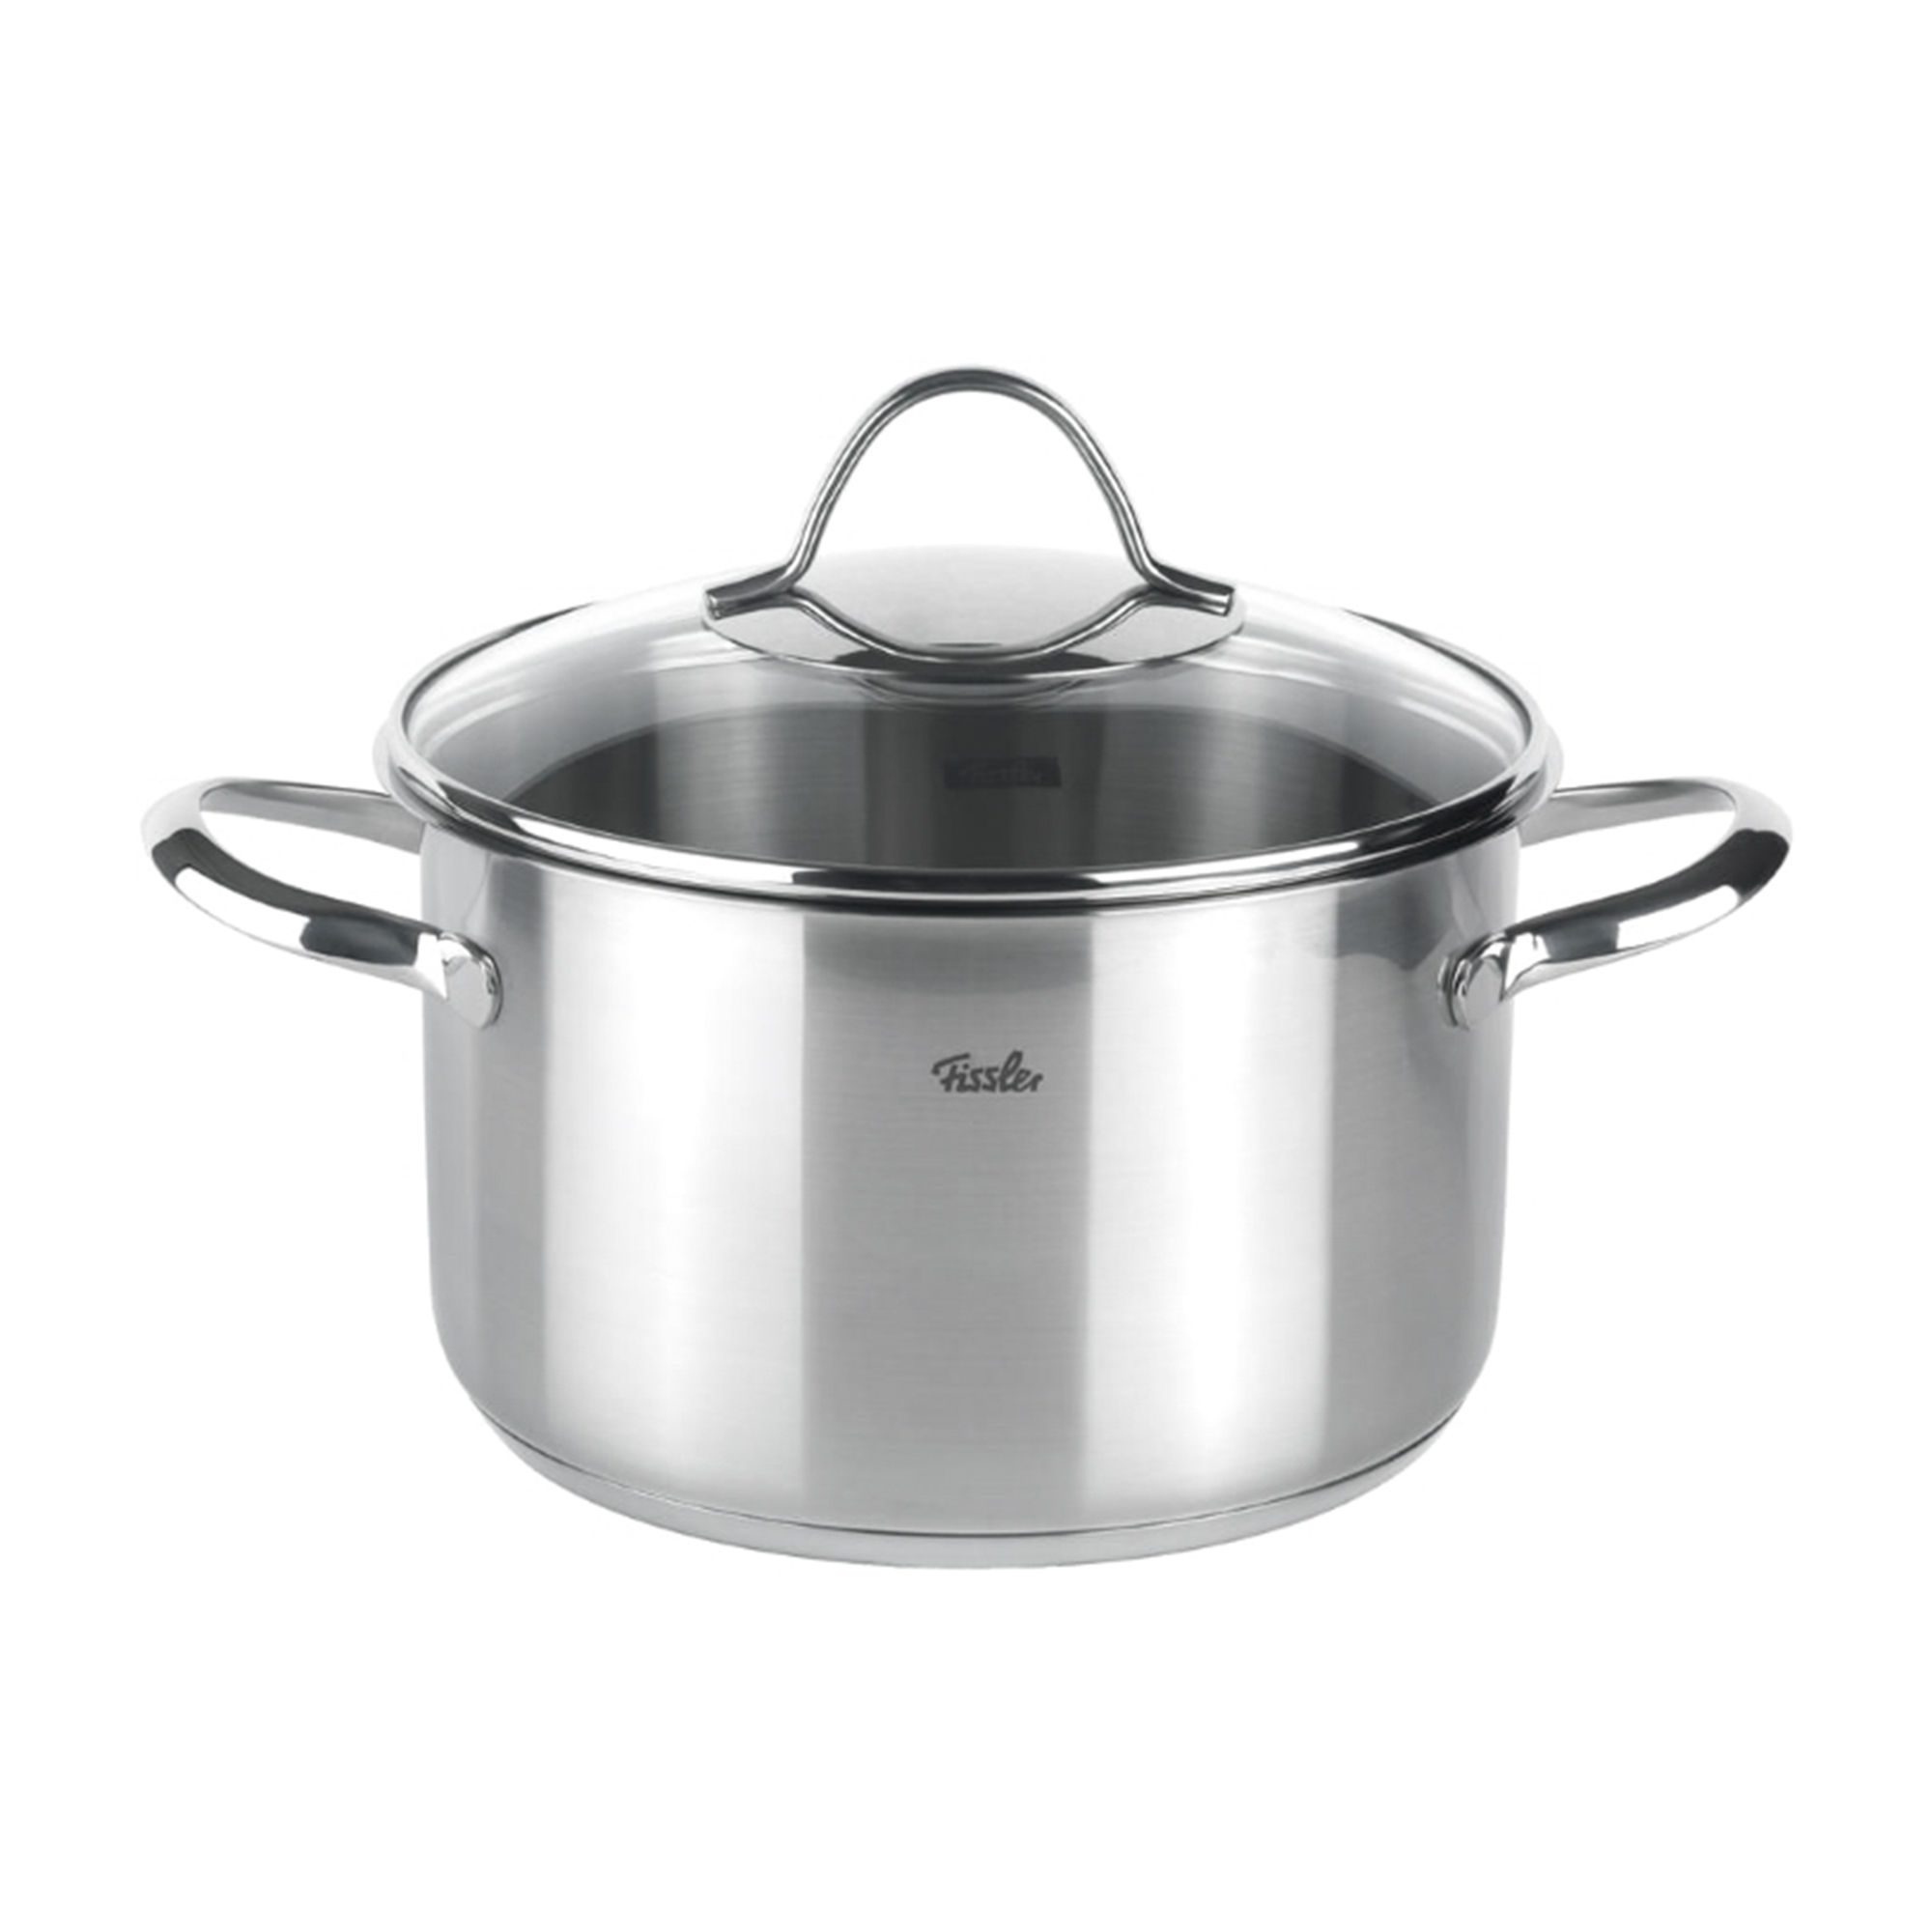 Кастрюля Fissler Paris 16 см 2,1 л кастрюля fissler valea 2 л